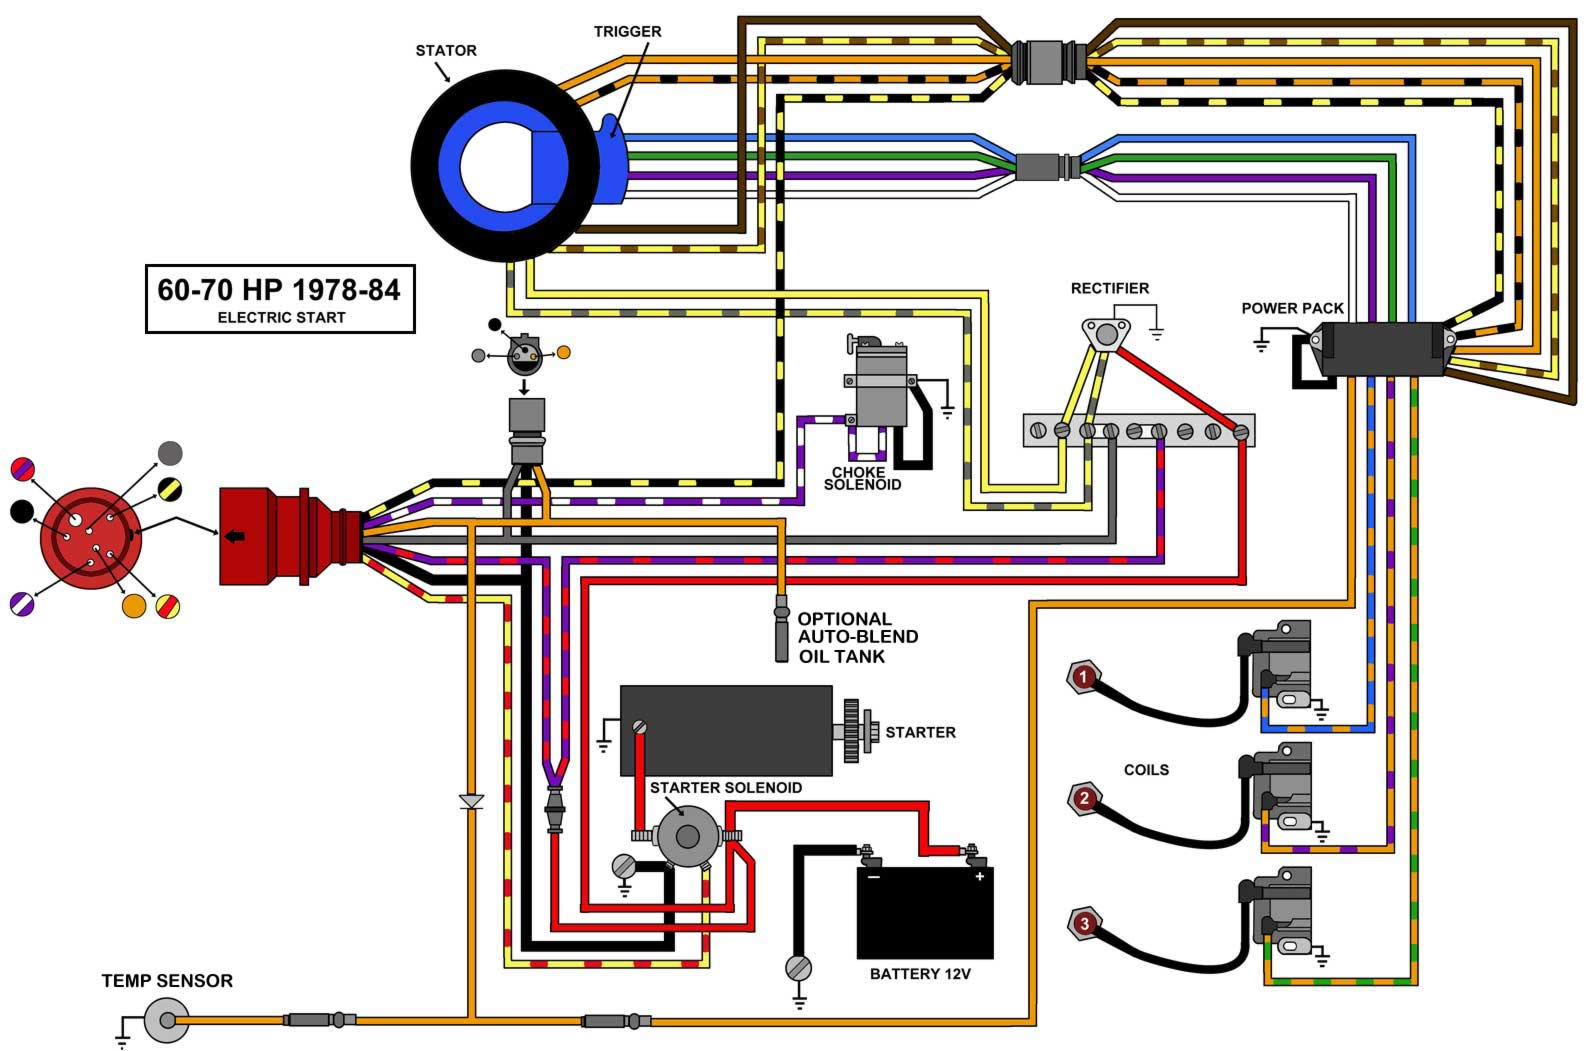 78 84_3 CYL_EL wiring tach from johnson controls page 1 iboats boating forums  at readyjetset.co